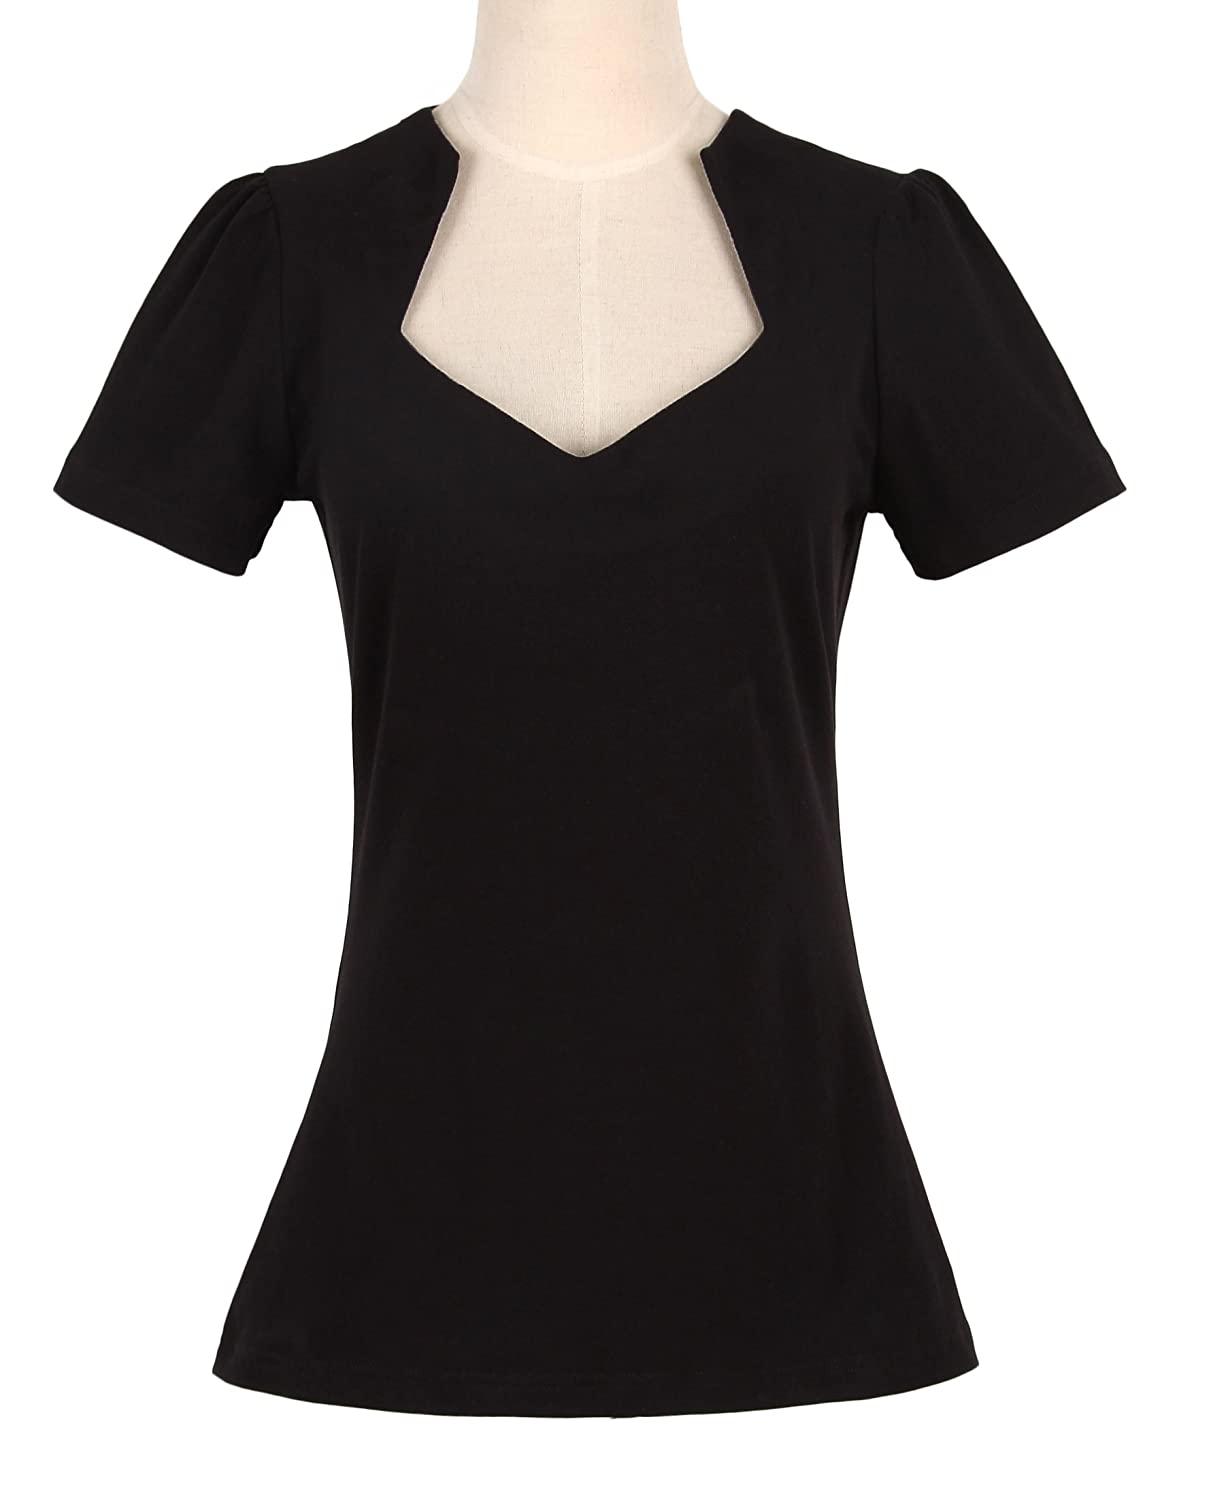 1940s Blouses and Tops Womens 50s pinup design sexy black tops sweetheart short sleeves vintage style $19.71 AT vintagedancer.com